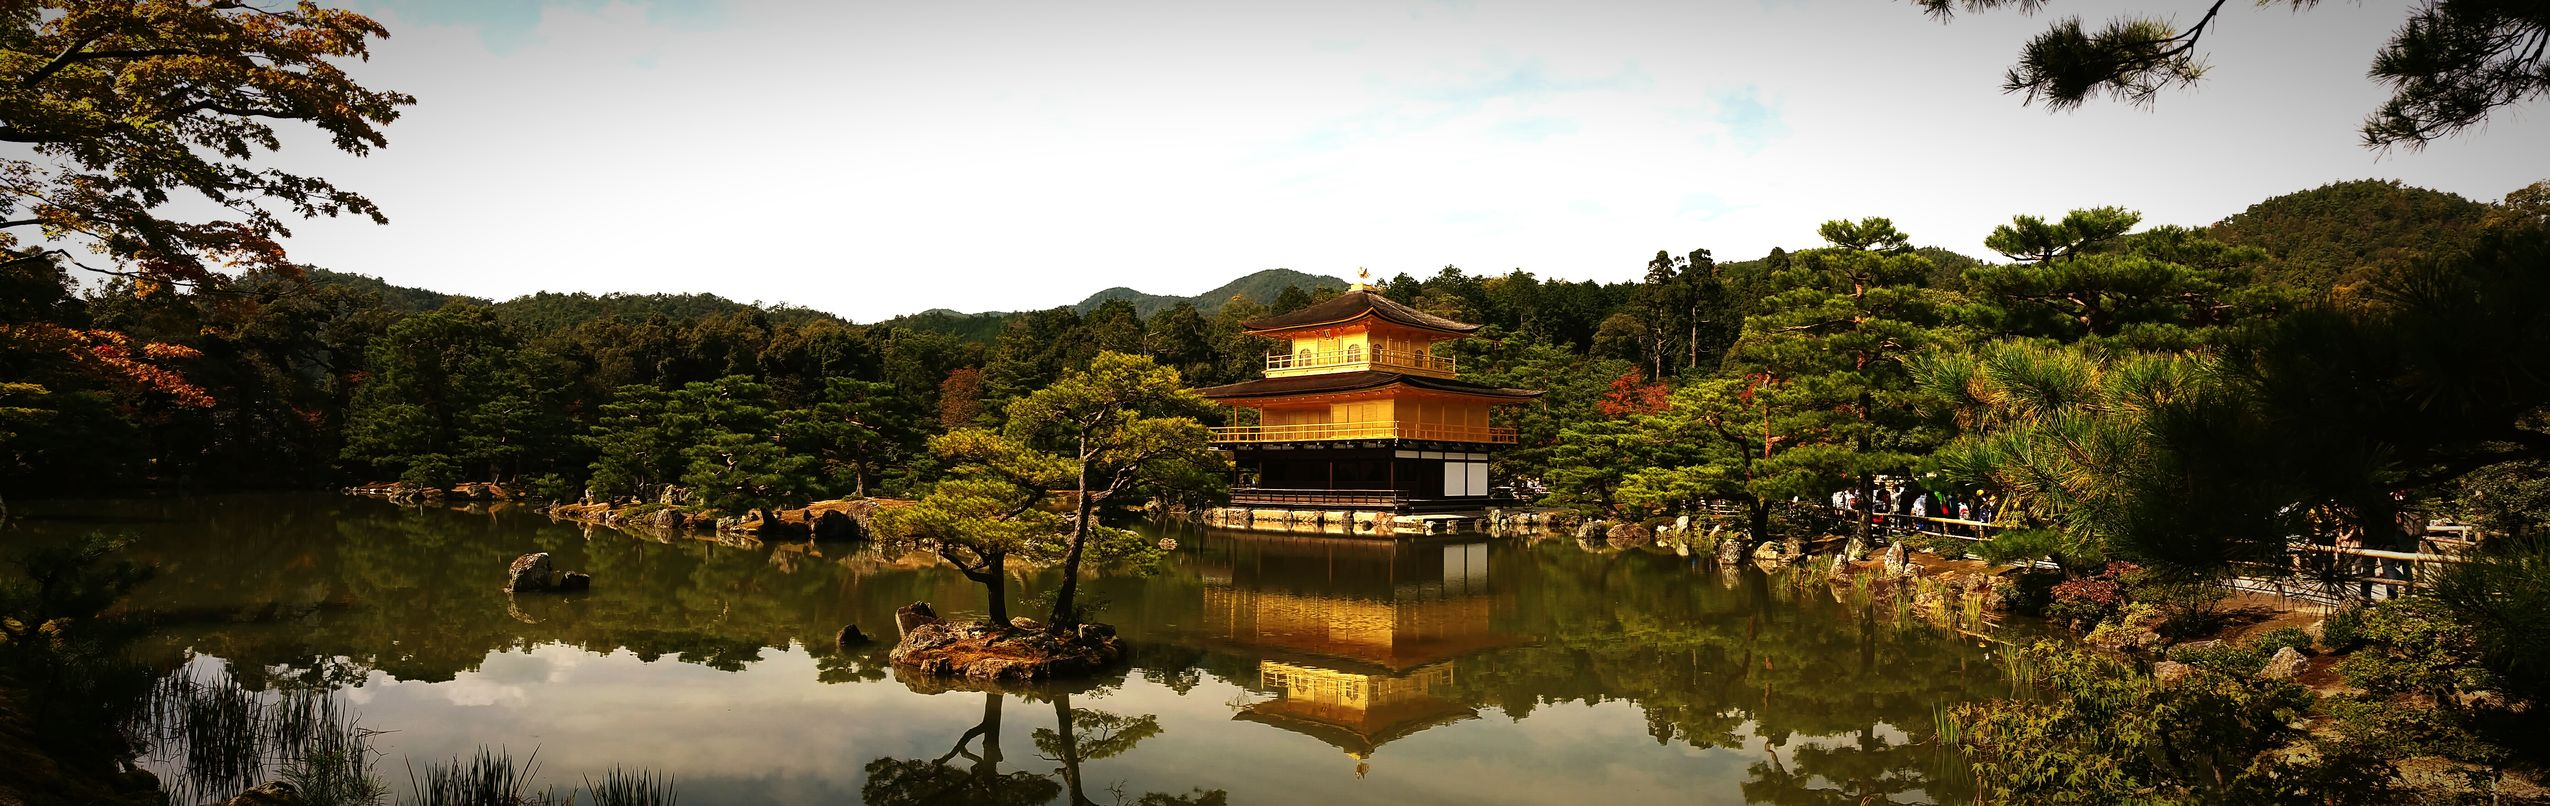 Japanese Holiday beautiful golden pavilion in Japan, said to hold remains of Buddha.